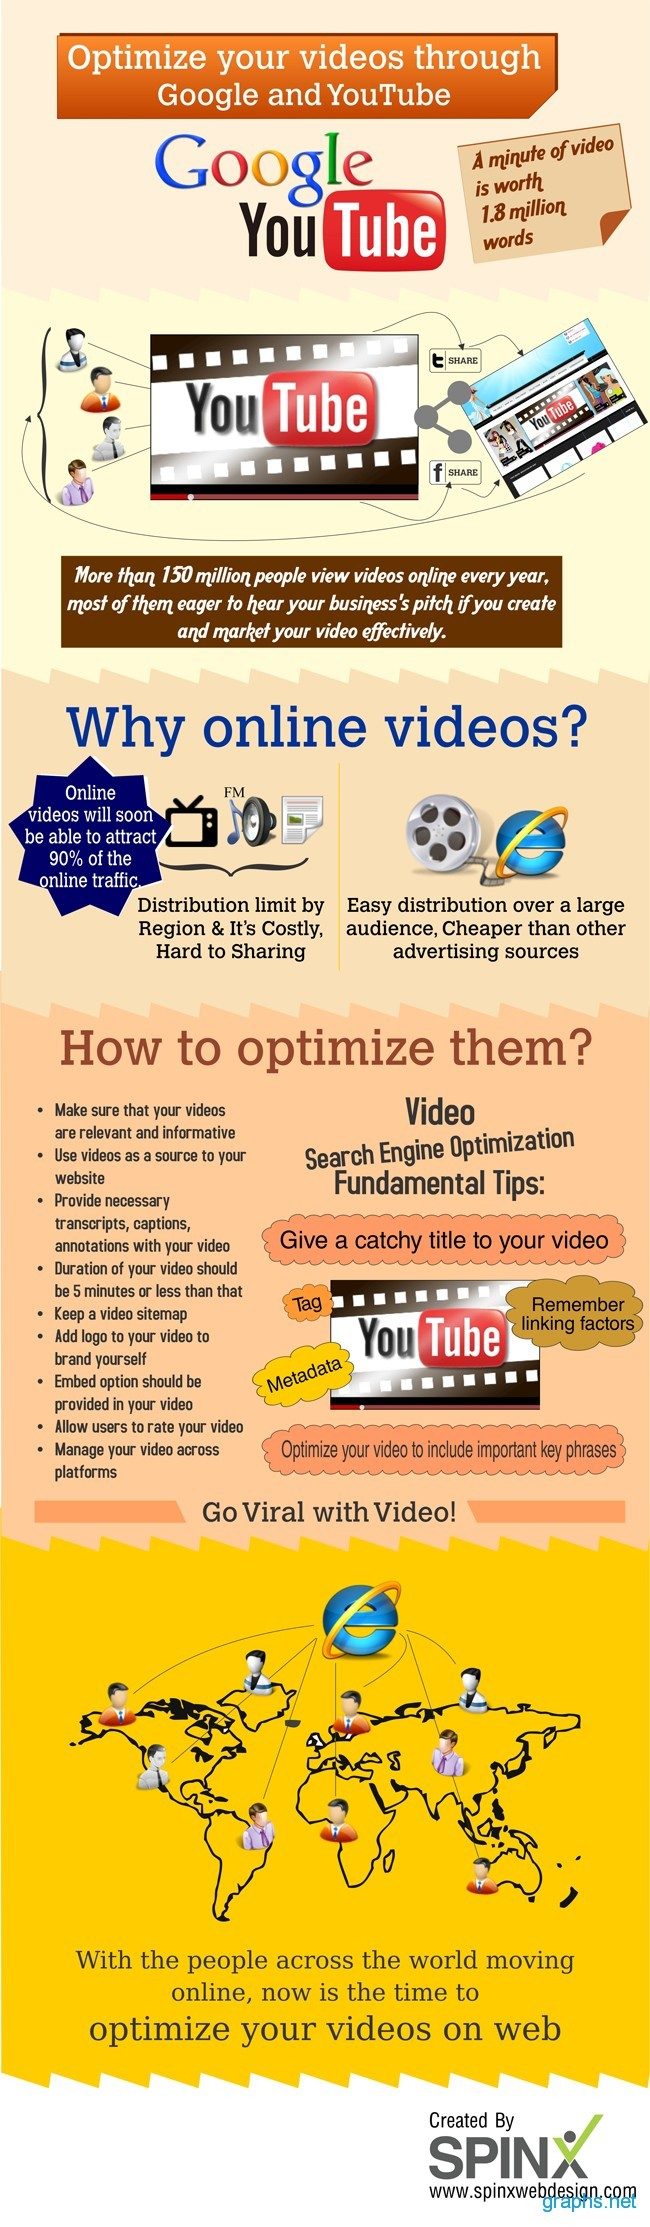 YouTube for Business Online Video Marketing